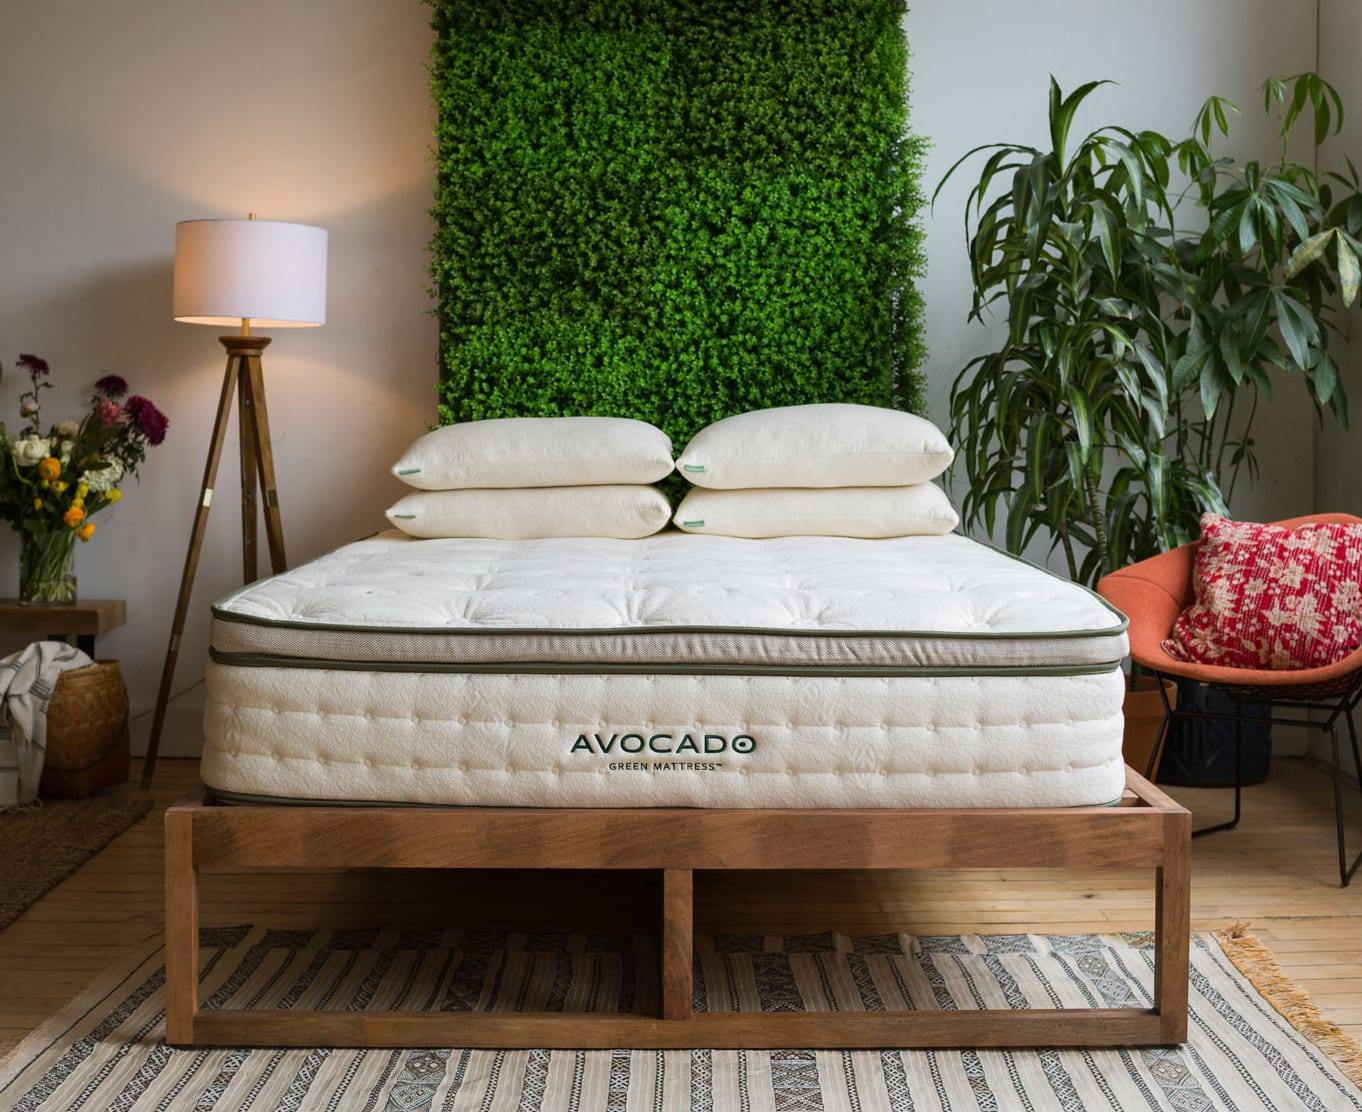 avocado mattress in a staged room